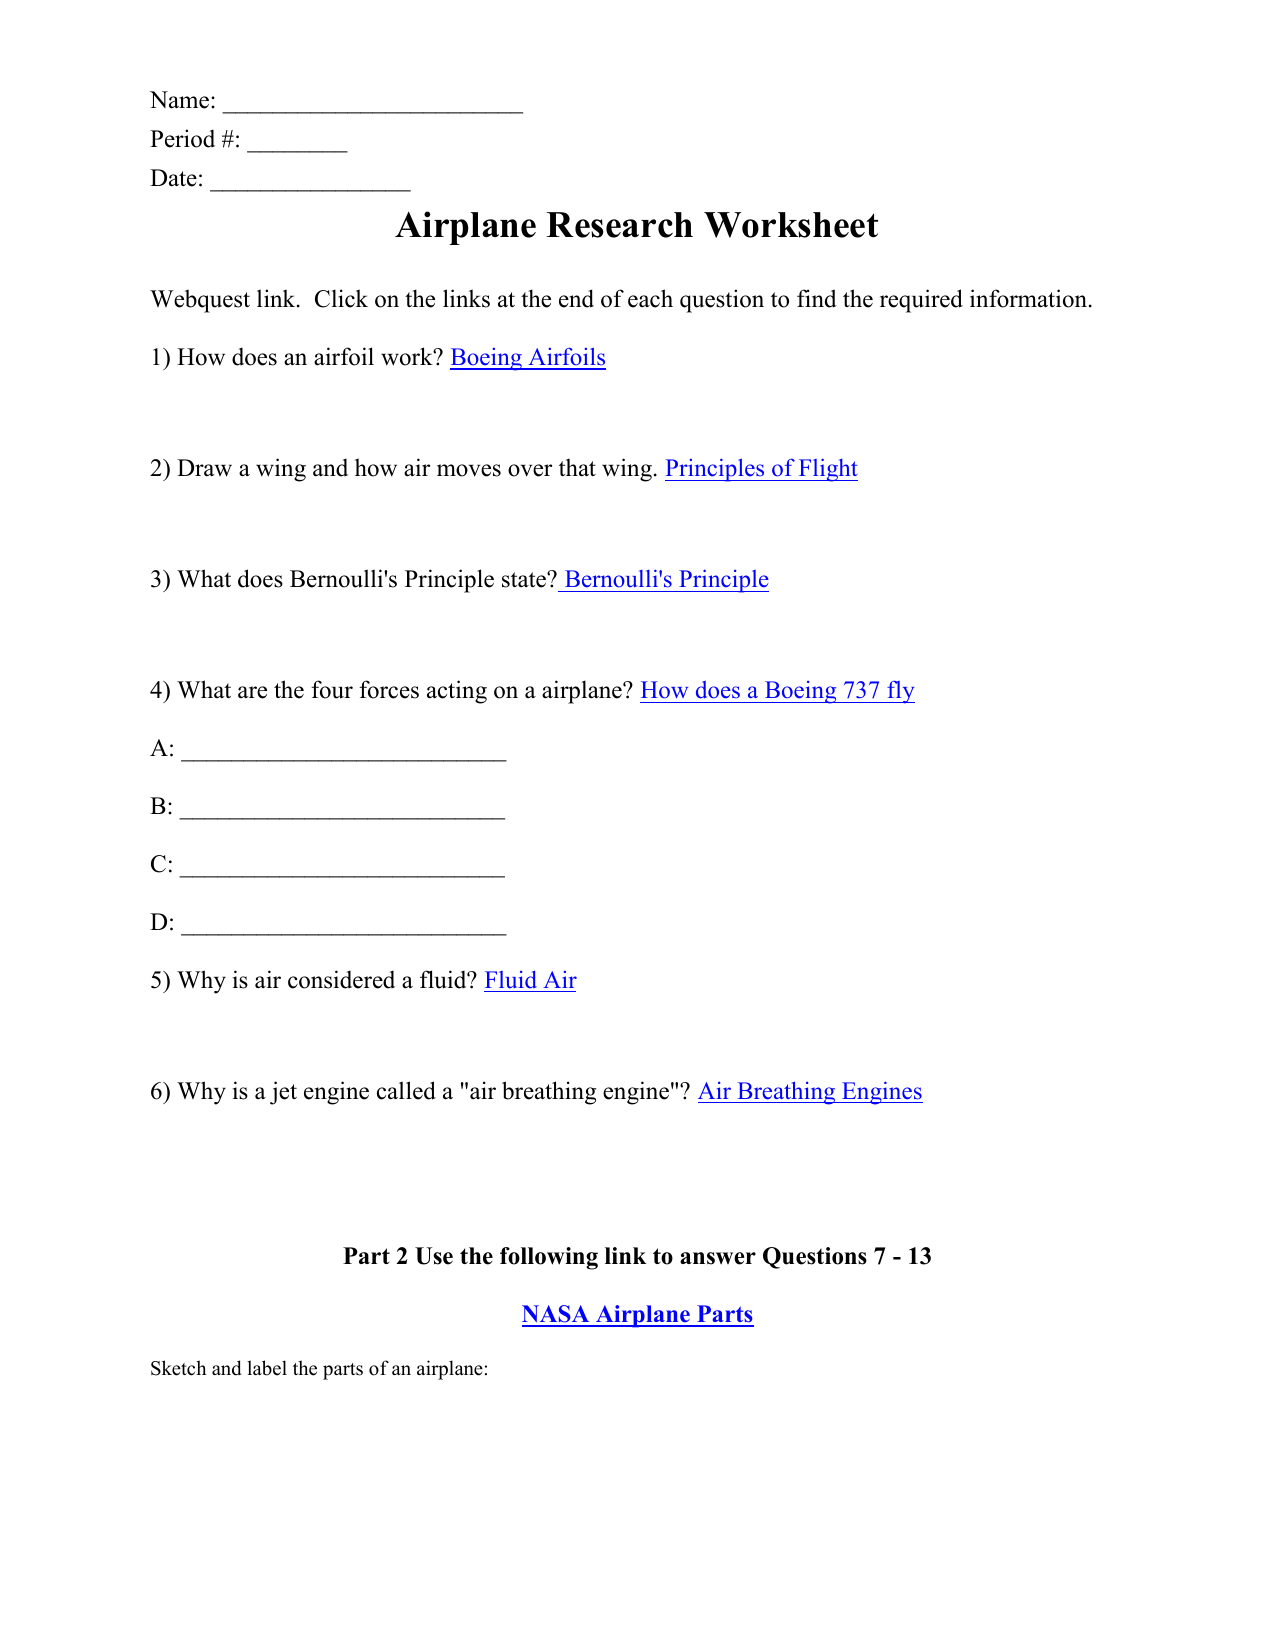 Get Here Label Parts Of An Airplane Worksheet